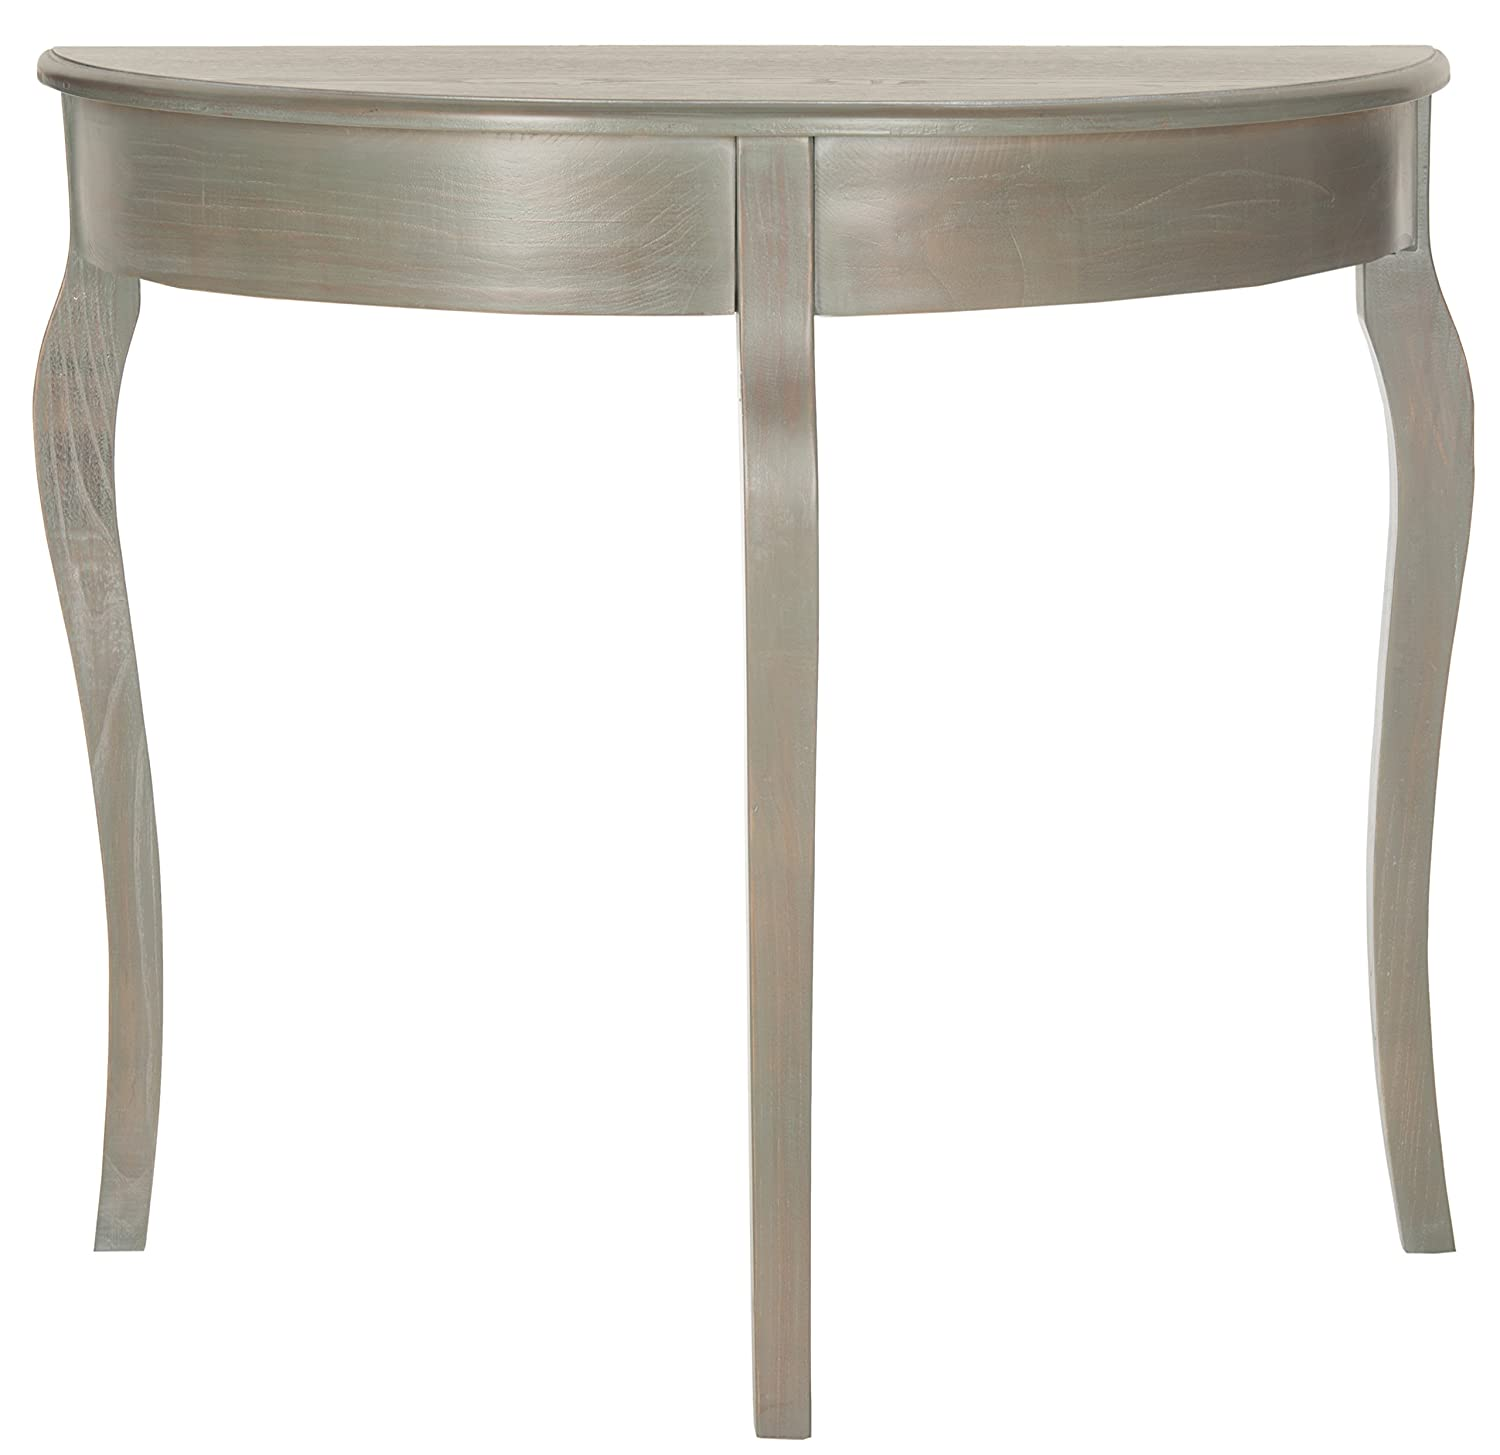 Steve Silver Company Davina Sofa Table, 50 x 18 x 31